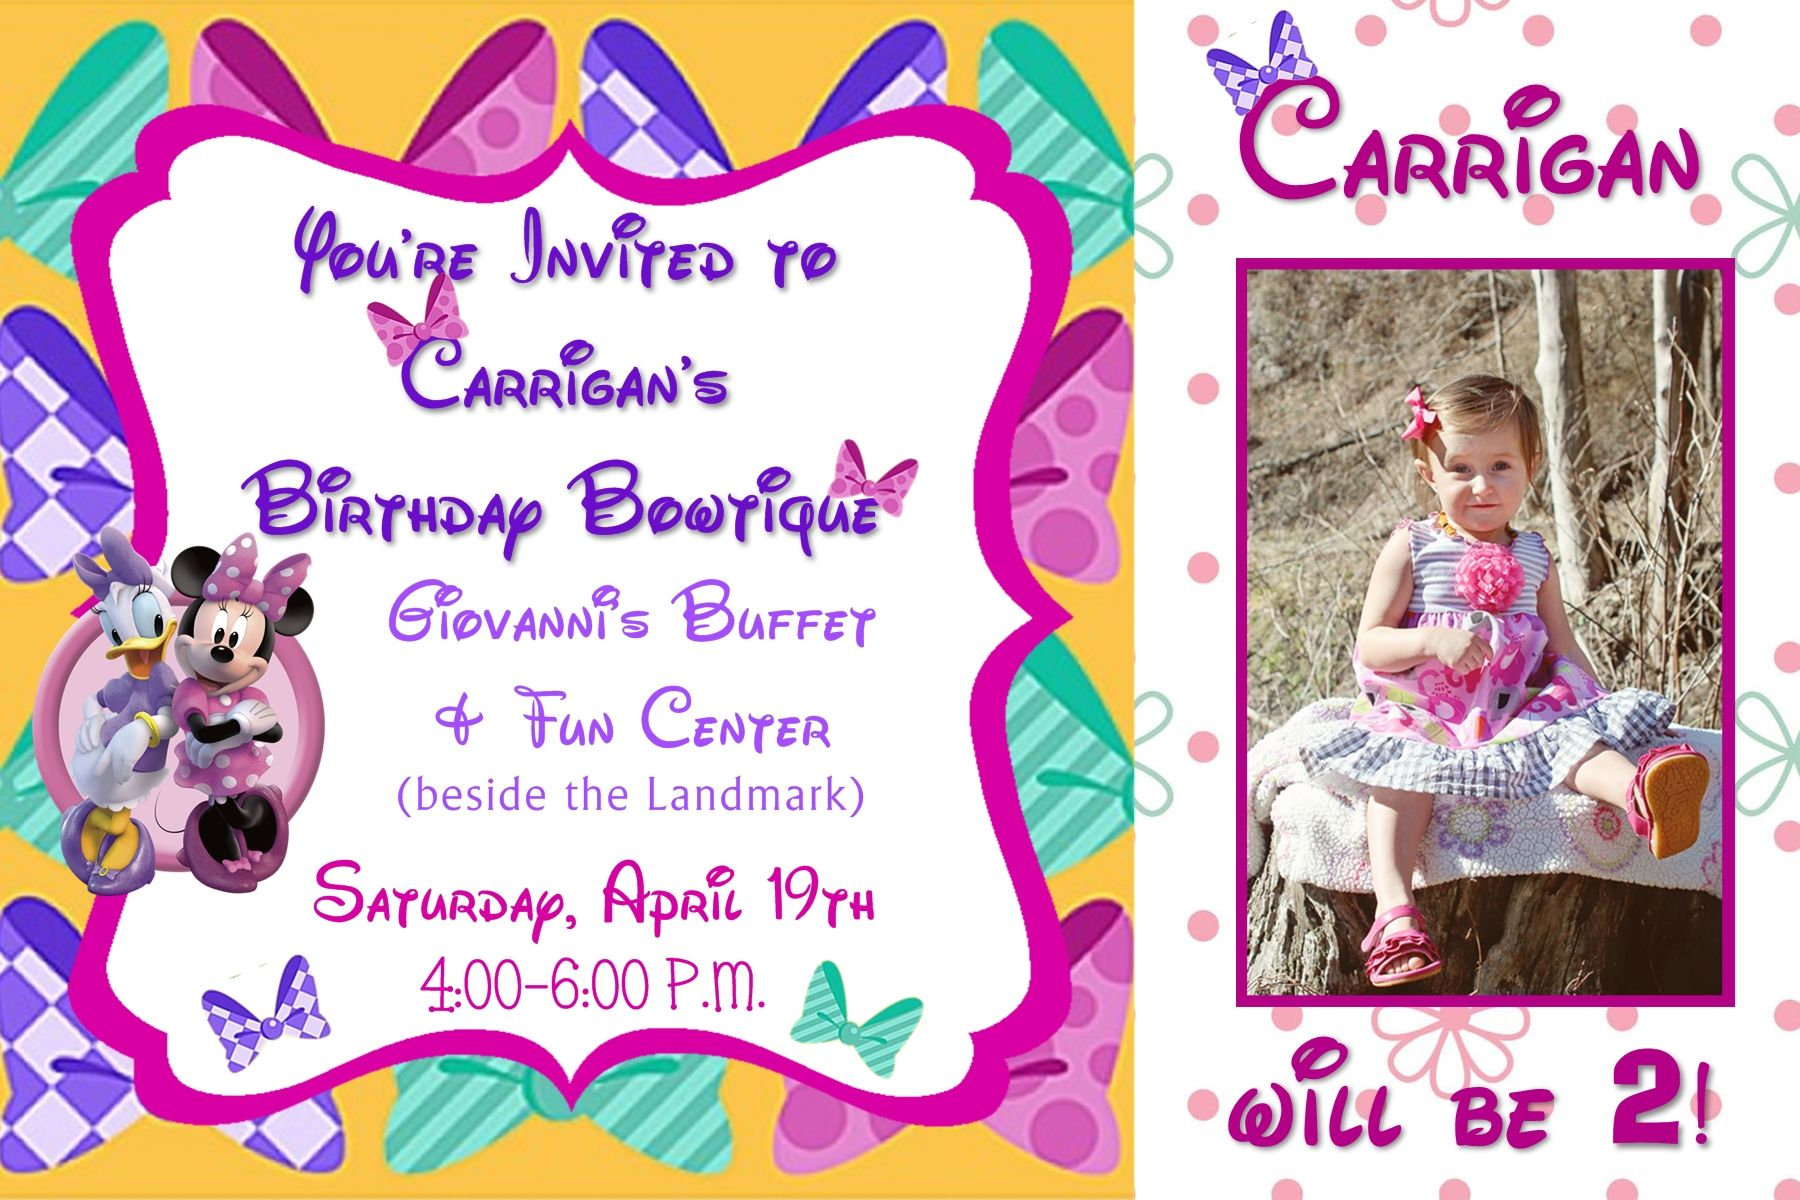 Minnies bowtique birthday invitation with photo in a 4x6 contact minnies bowtique birthday invitation with photo in a 4x6 contact me via email aswiney01yahoo stopboris Gallery